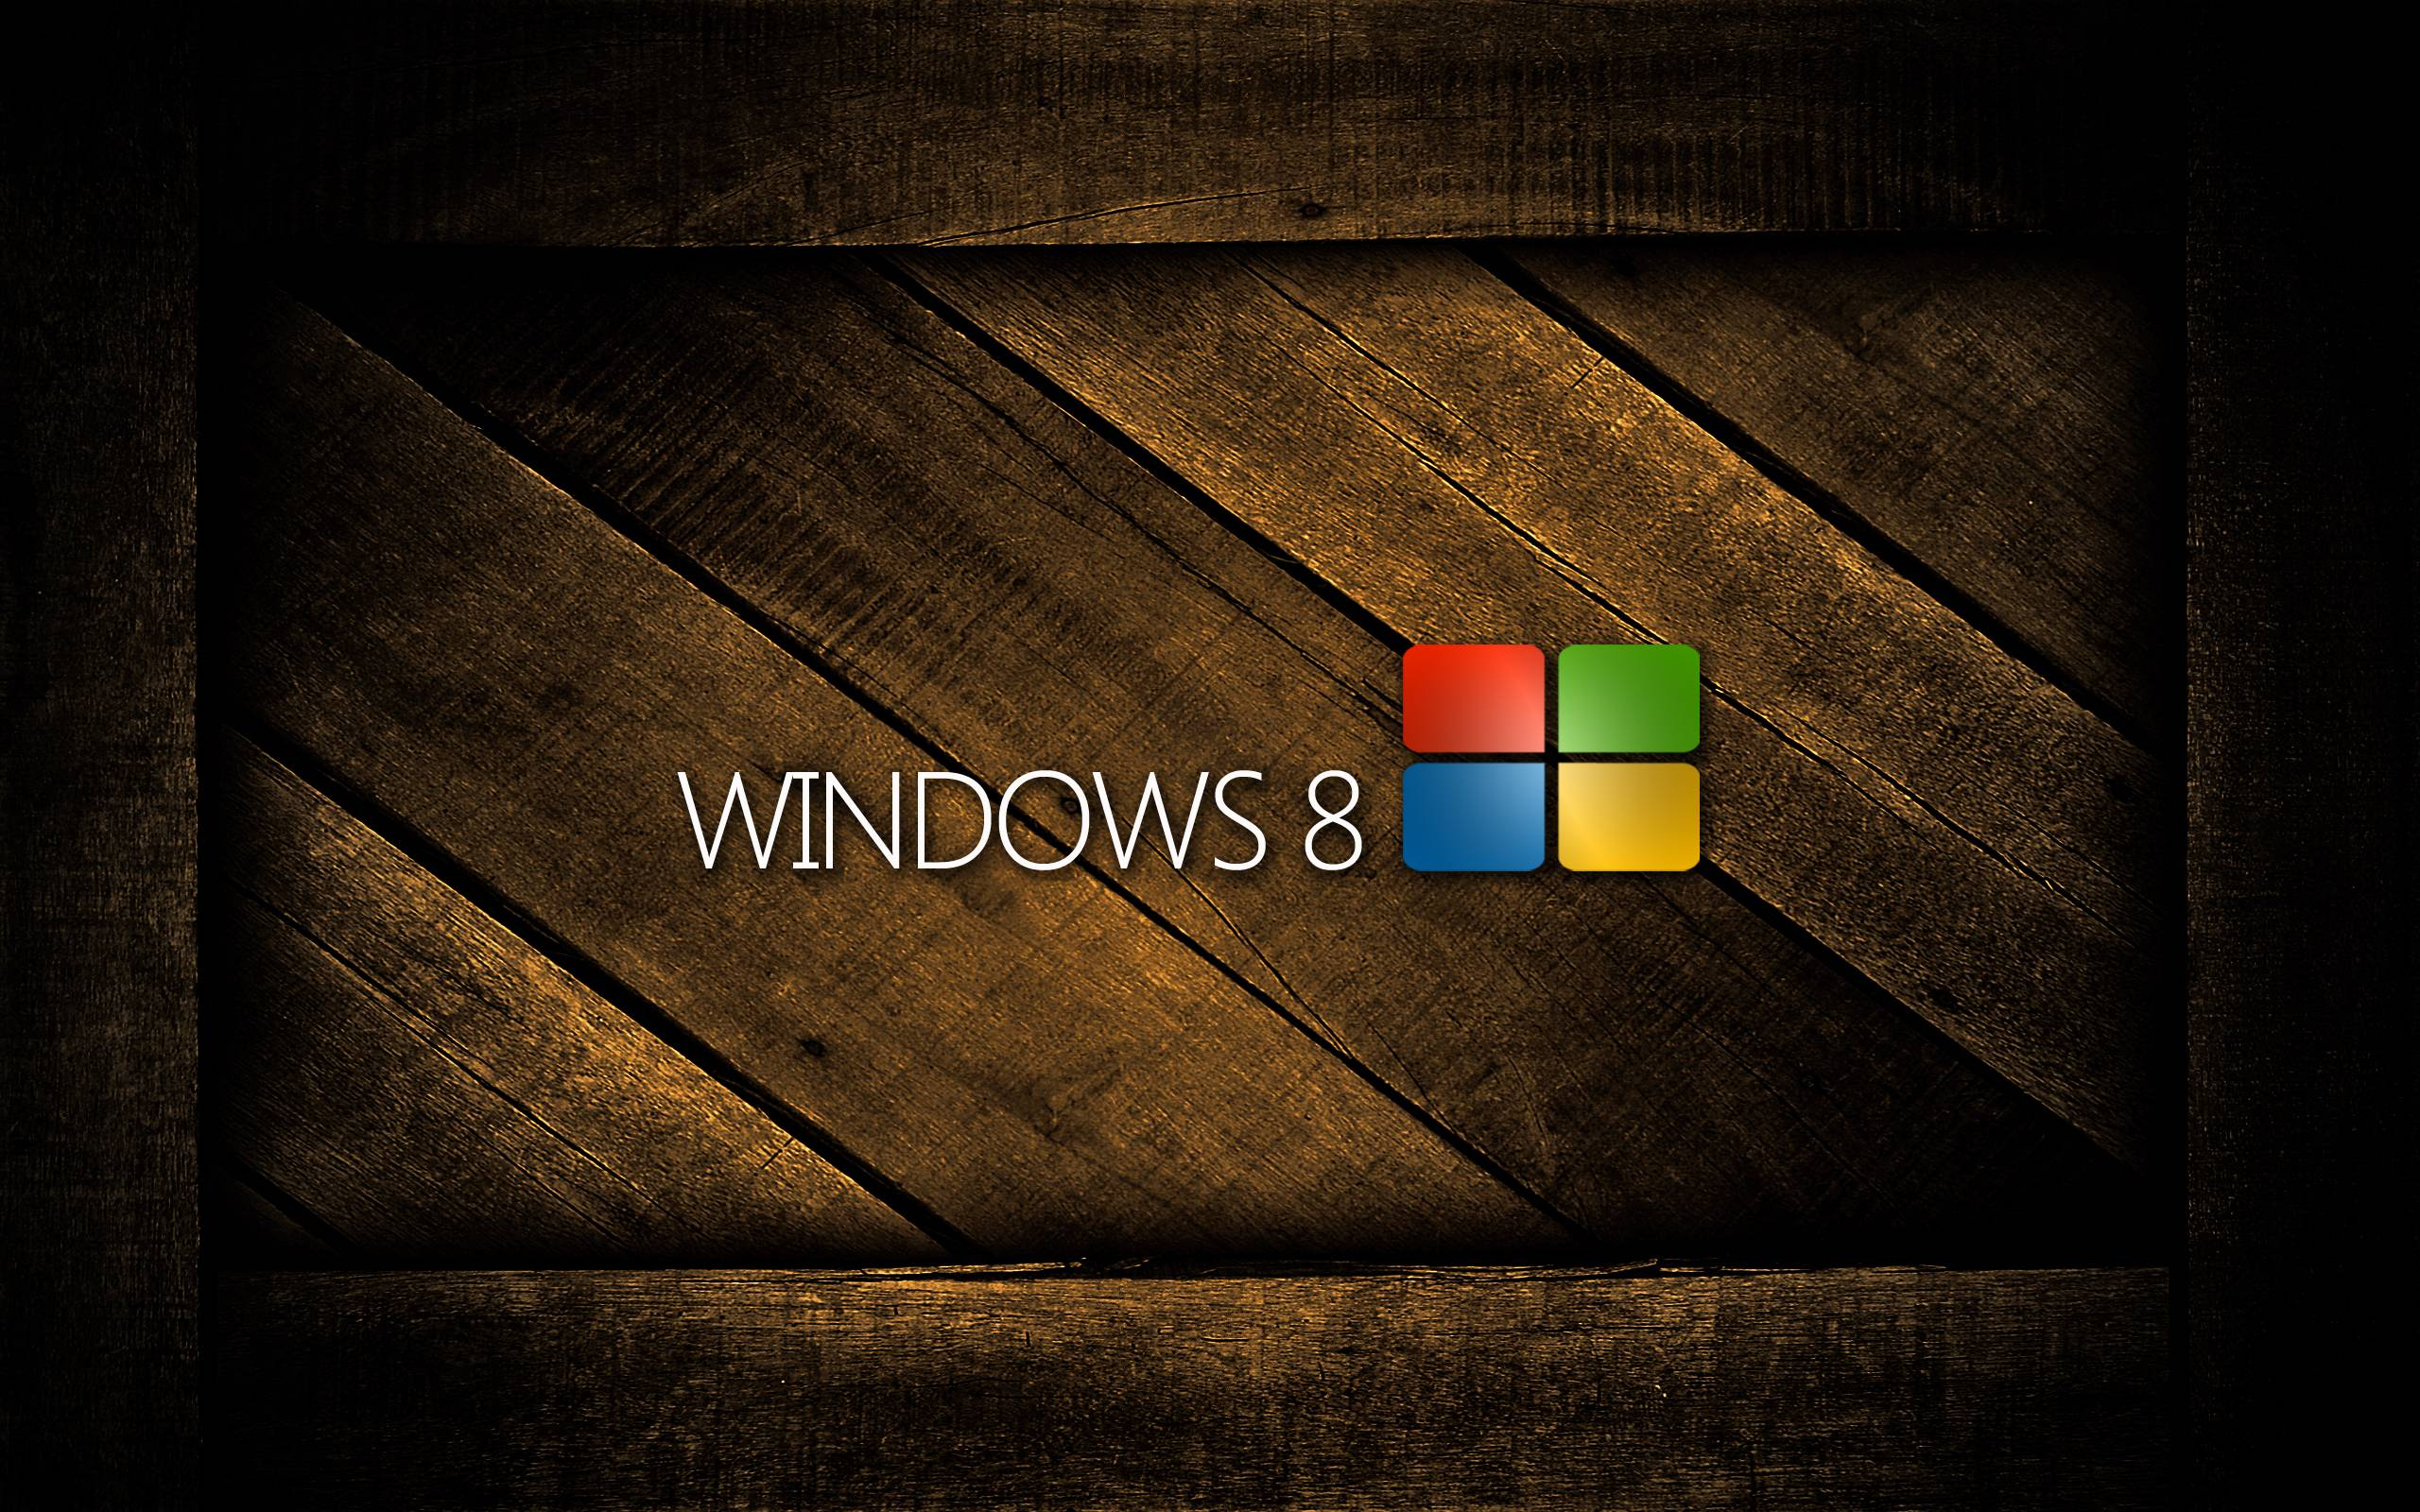 Windows 8 HD Wallpapers Wallpaper Cave